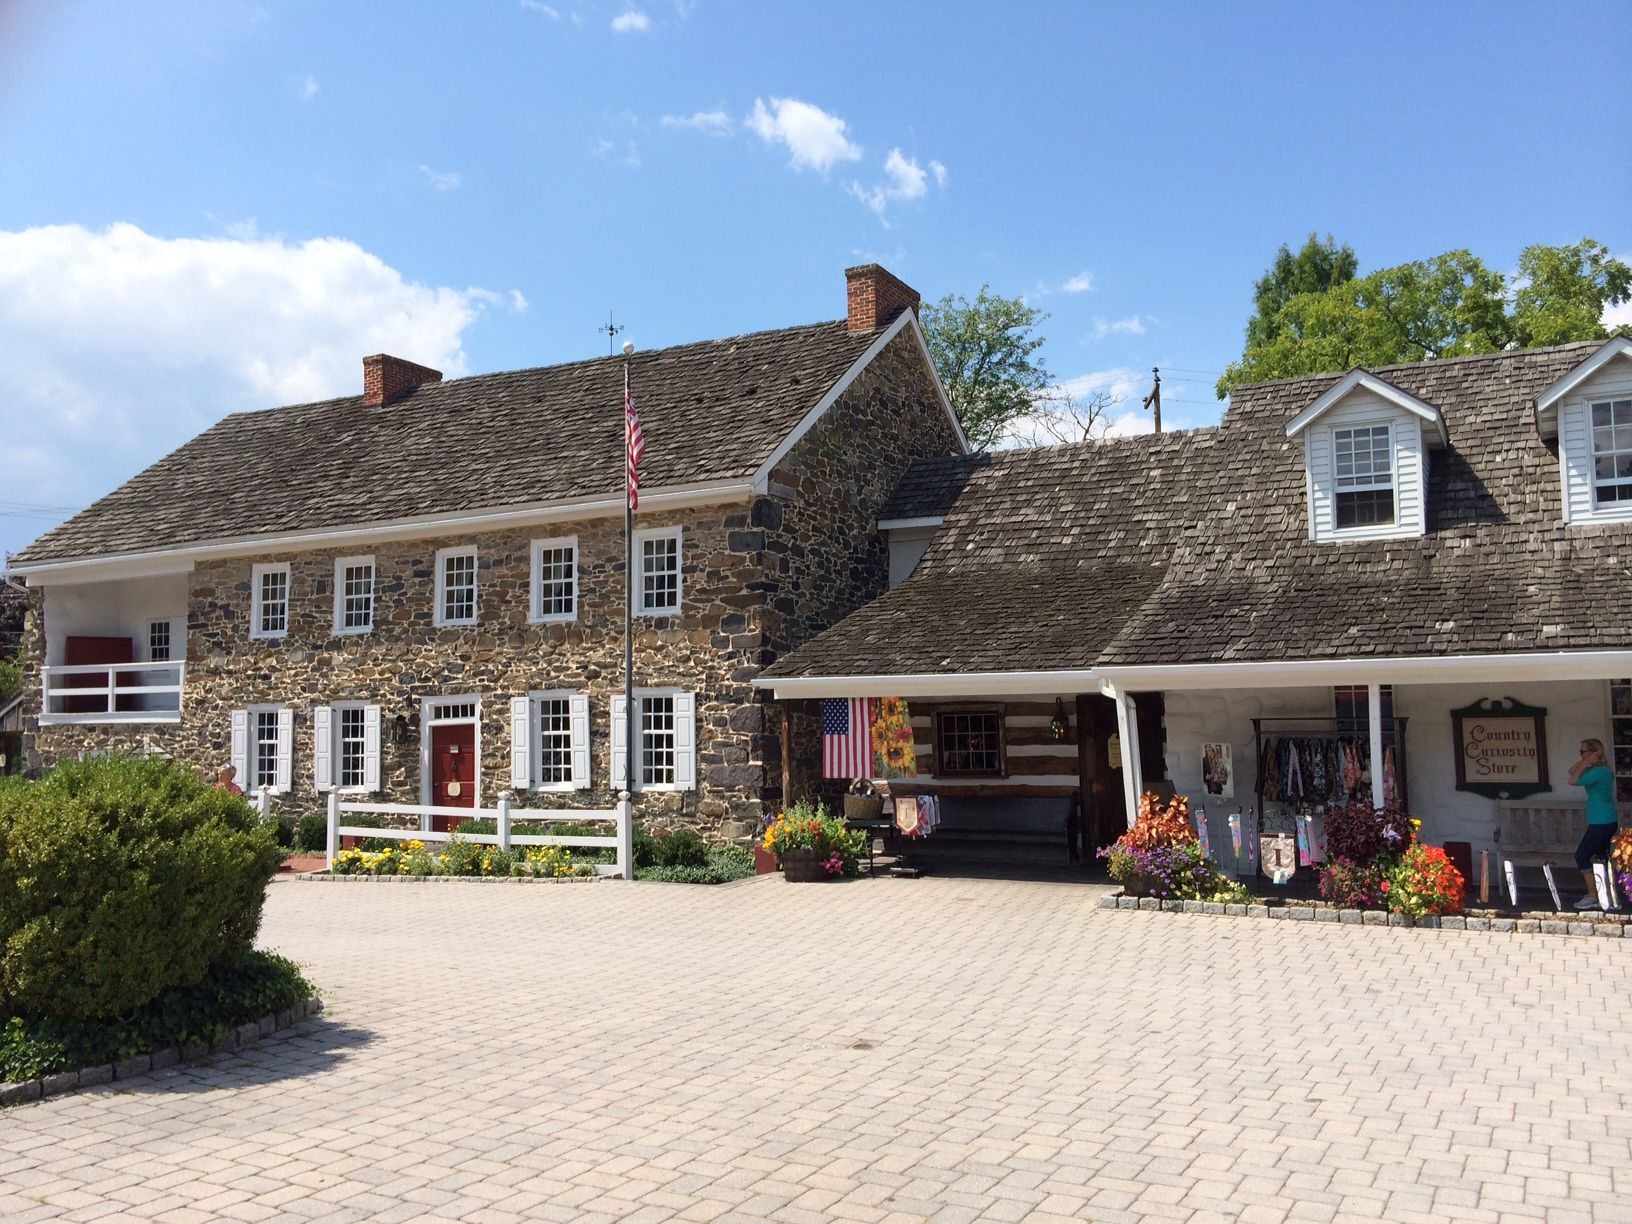 Dobbin House Tavern The Oldest Building Gettysburg Was Part Of The Underground Railroad And Now Offers Fine And Casual Dining Old Building House Styles Lodge